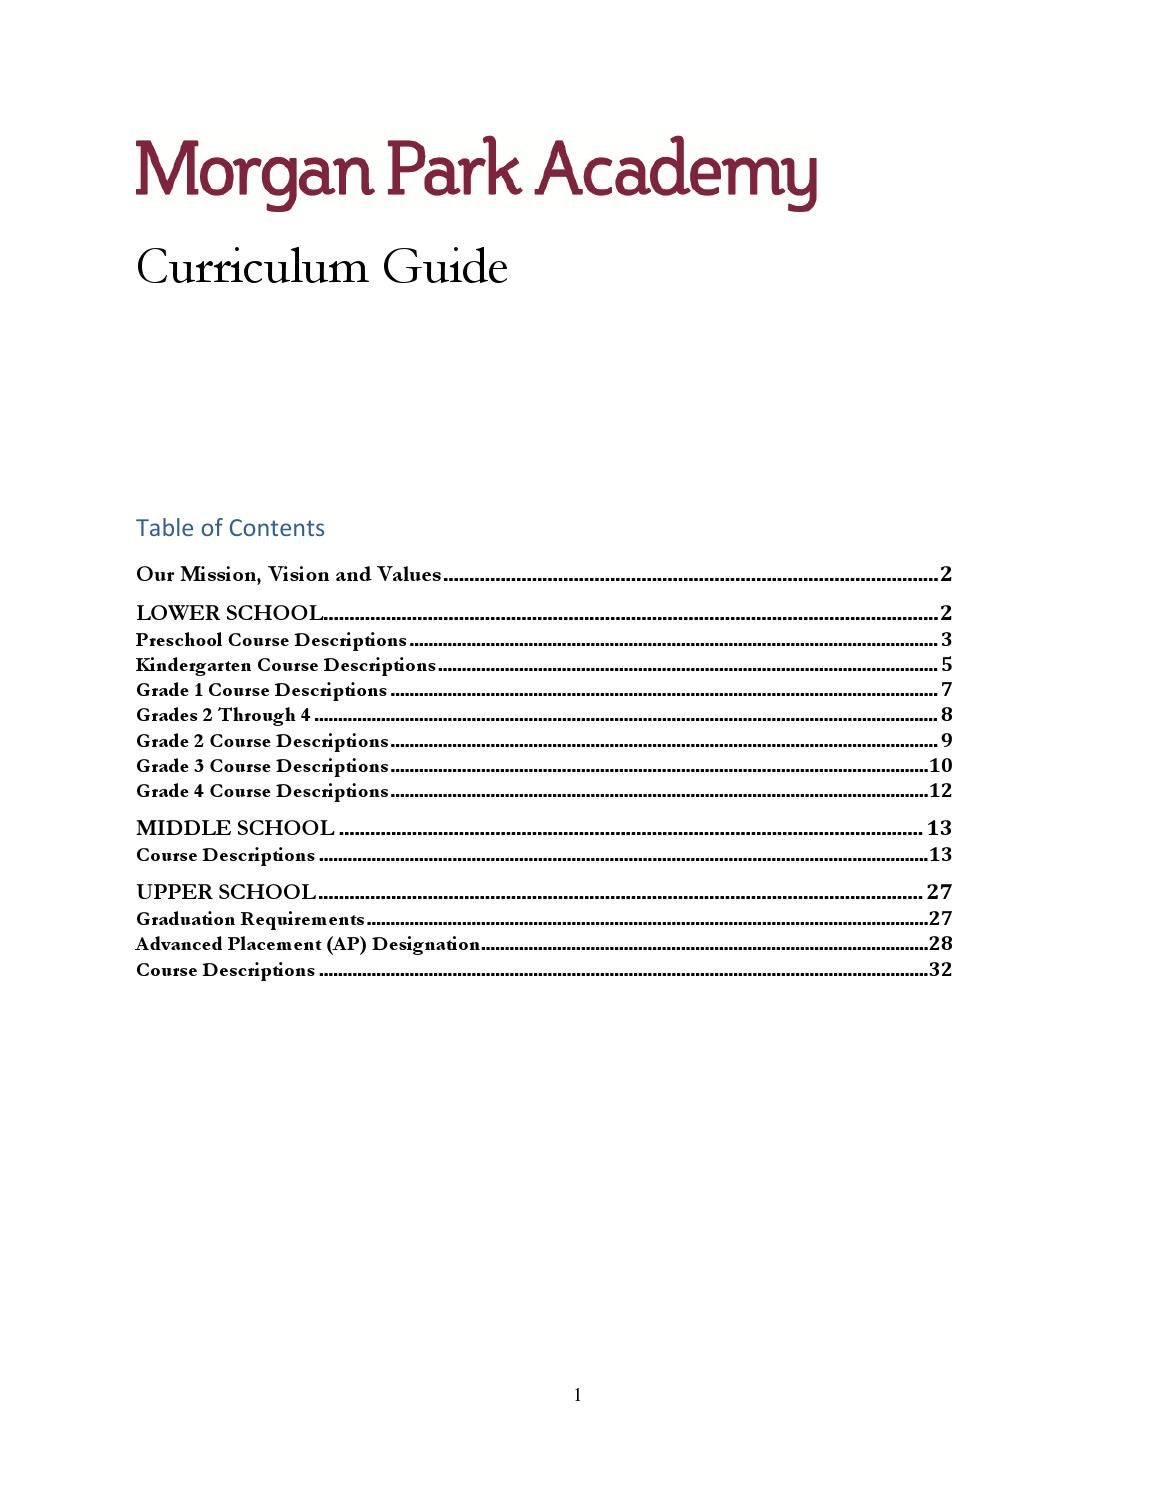 MPA Curriculum Guide By Morgan Park Academy Issuu